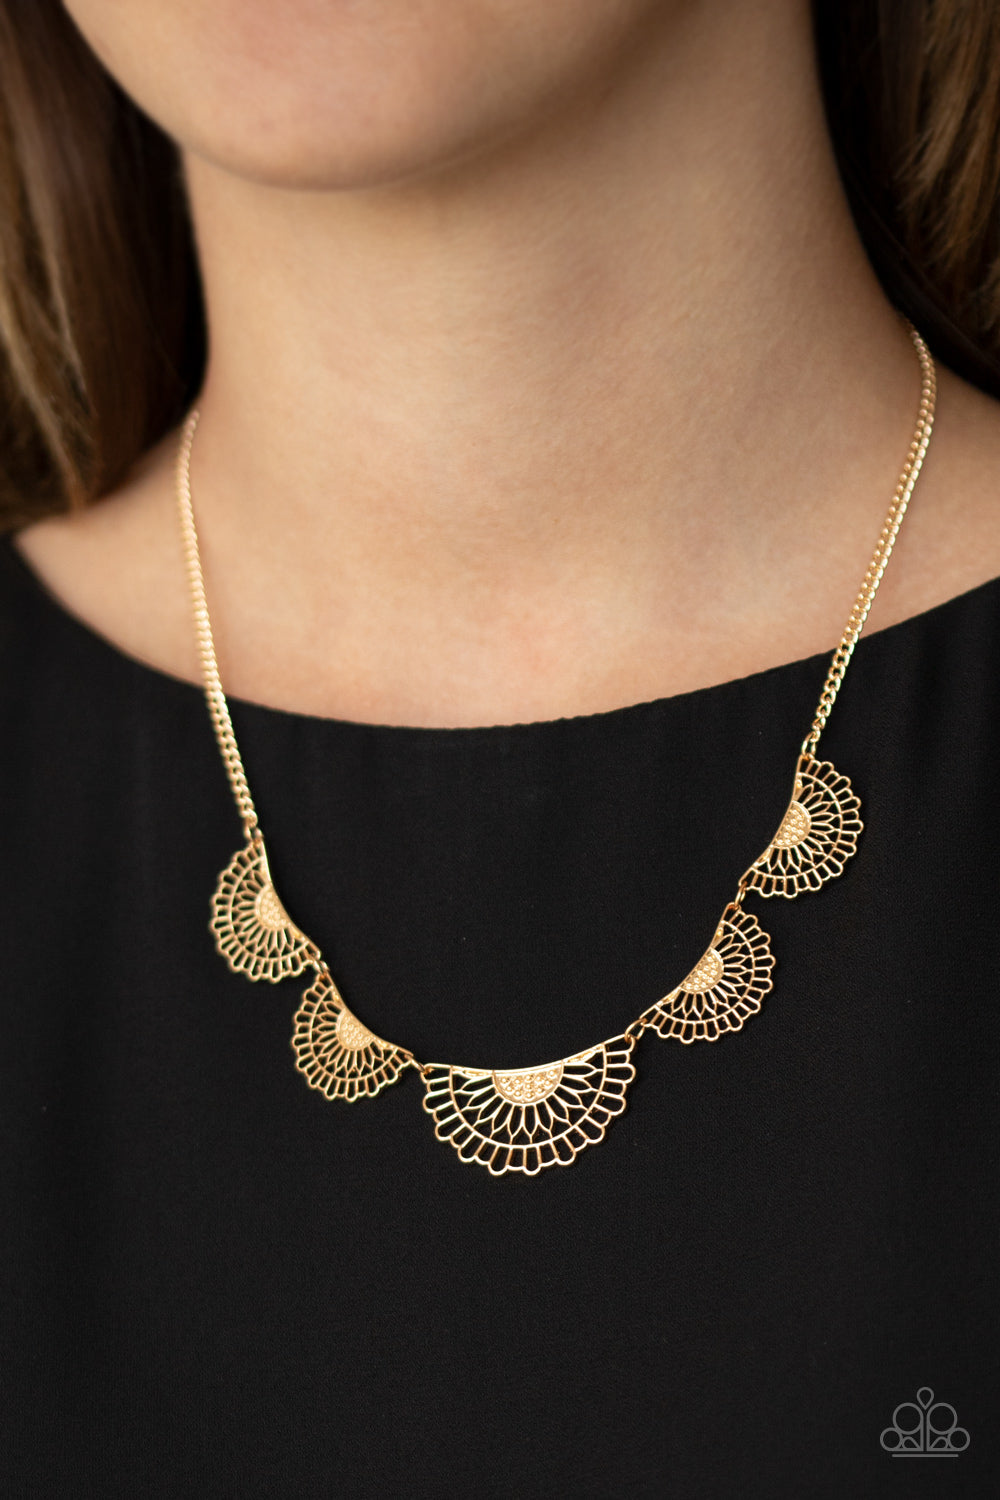 Paparazzi Jewelry & Accessories - Fanned Out Fashion - Gold Necklace. Bling By Titia Boutique